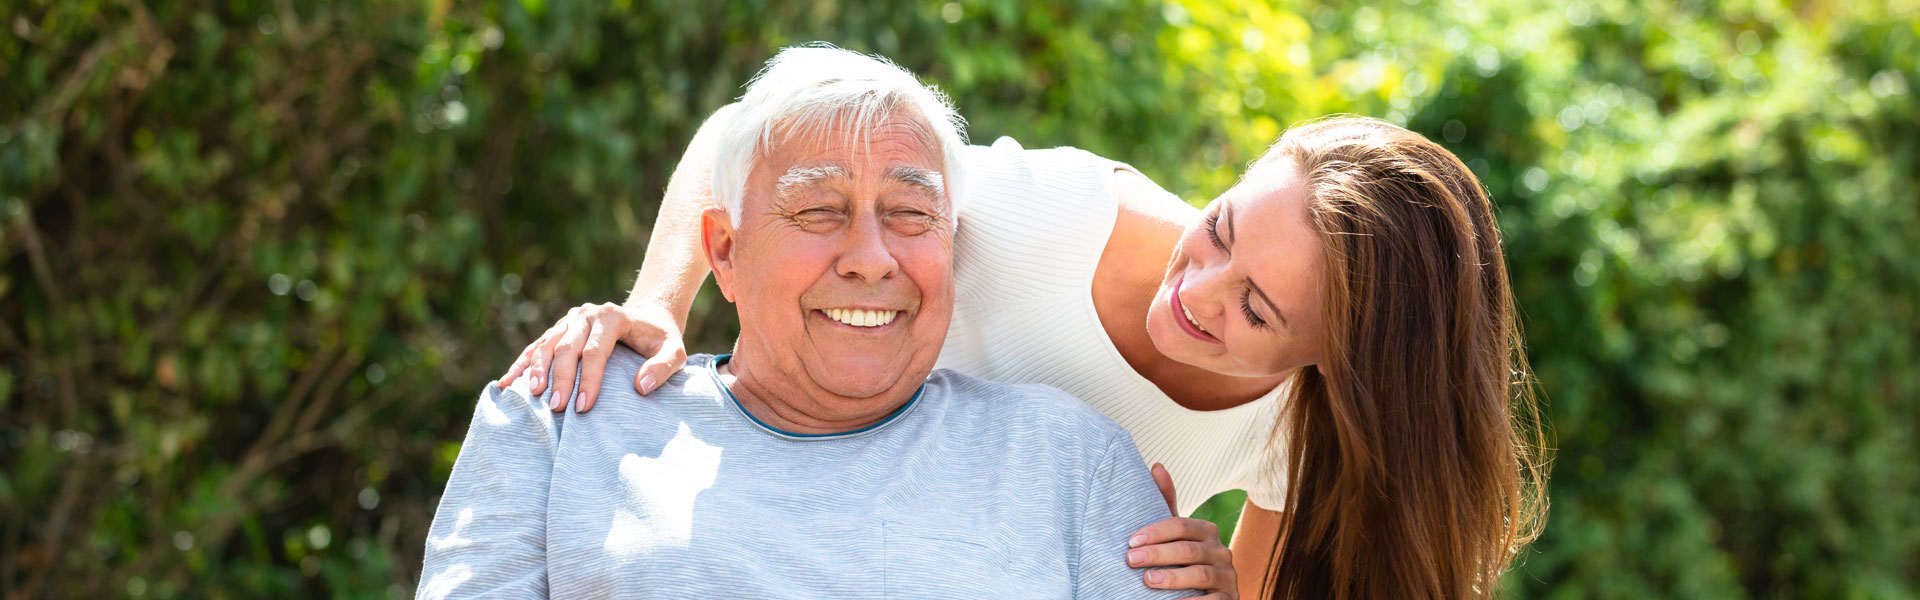 An elderly man smiling with his adult daughter